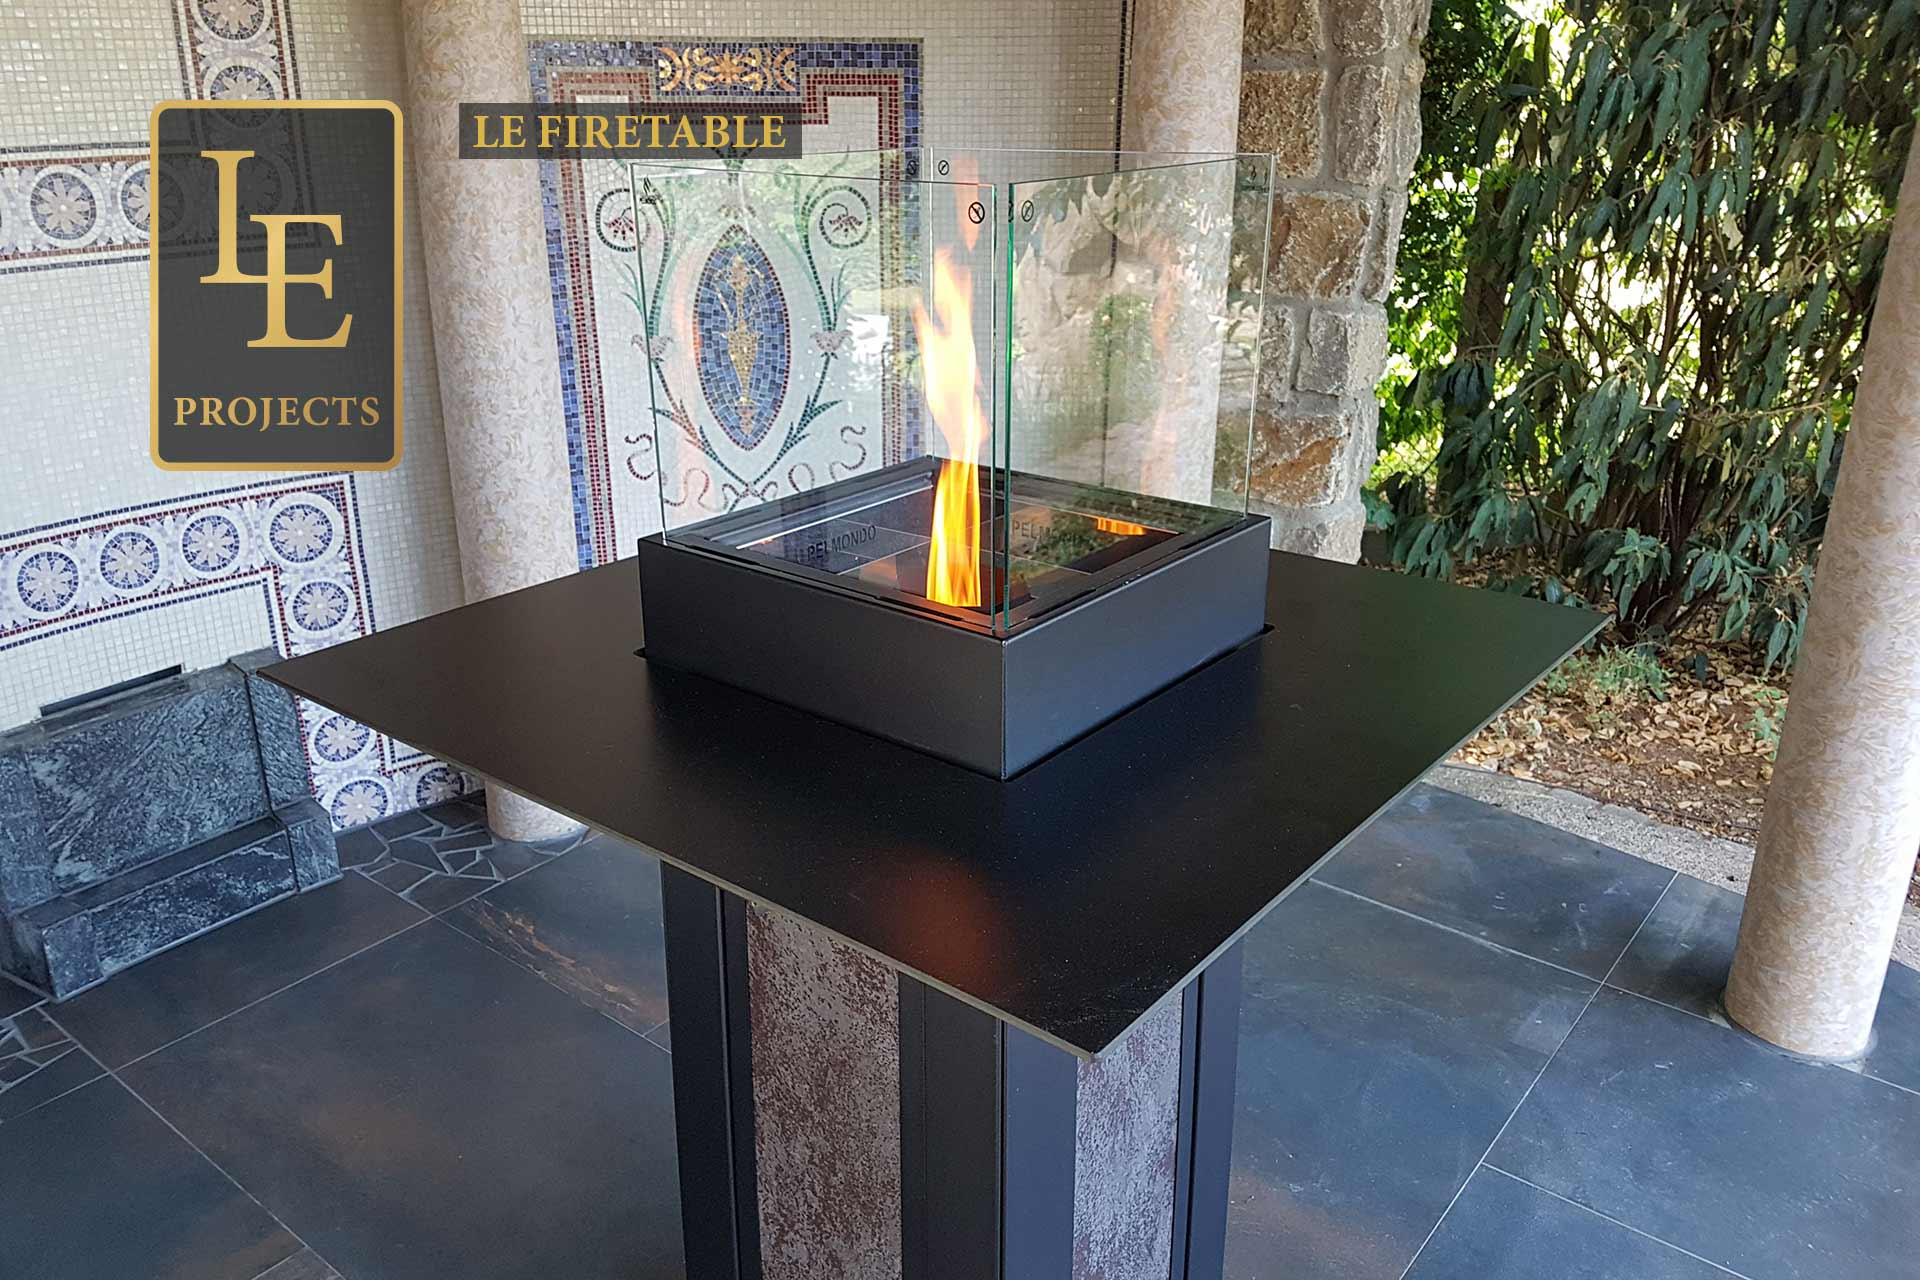 LE Projectsline LE FireTable